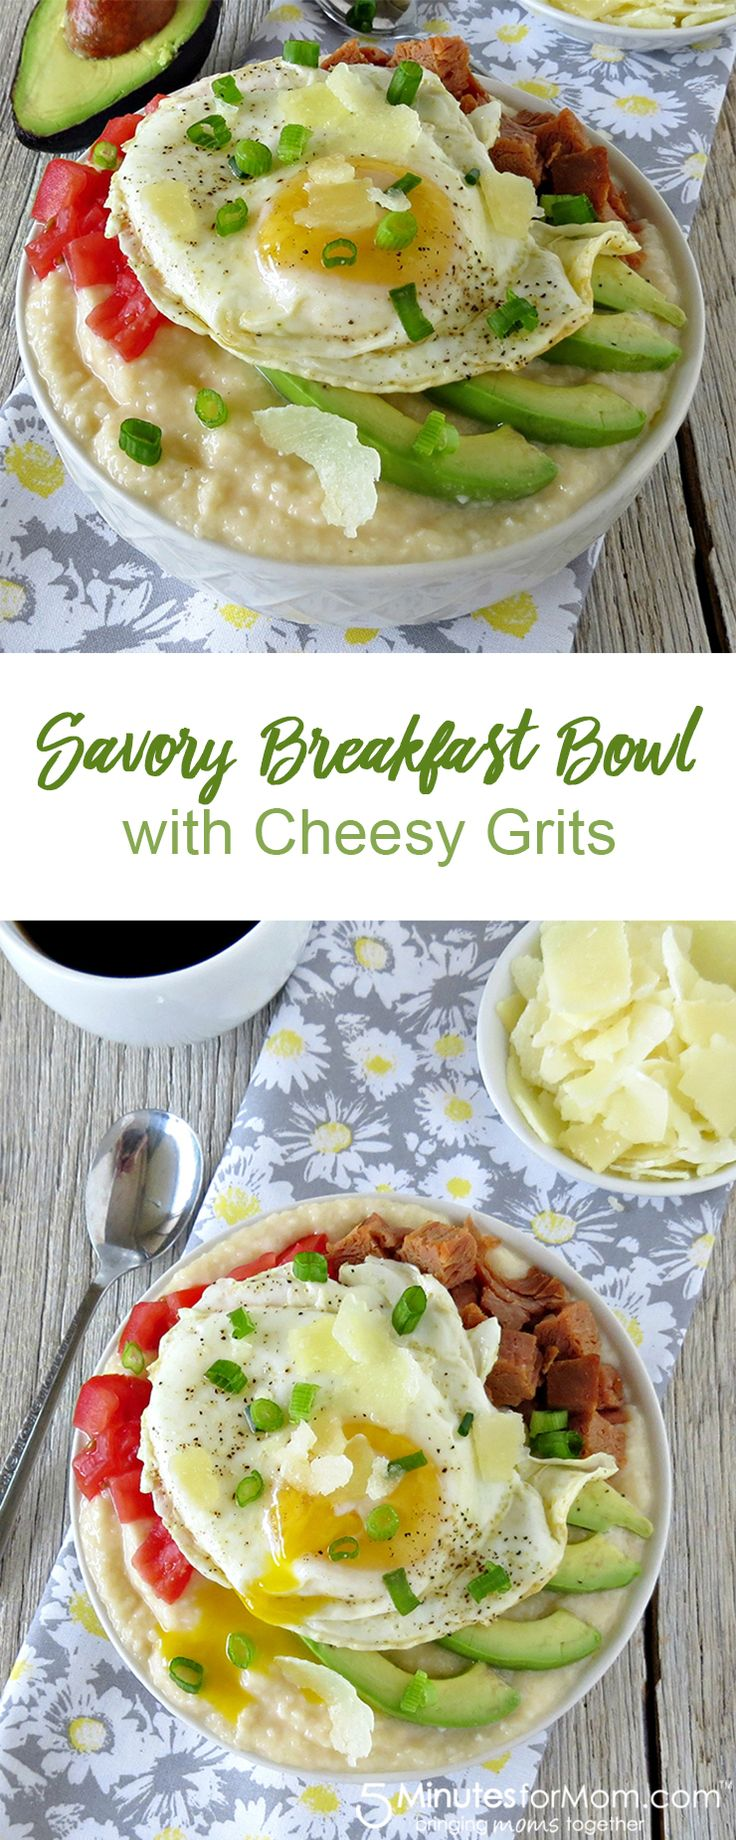 Savory Breakfast Bowl With Cheesy Grits Great Way To Start The Day!